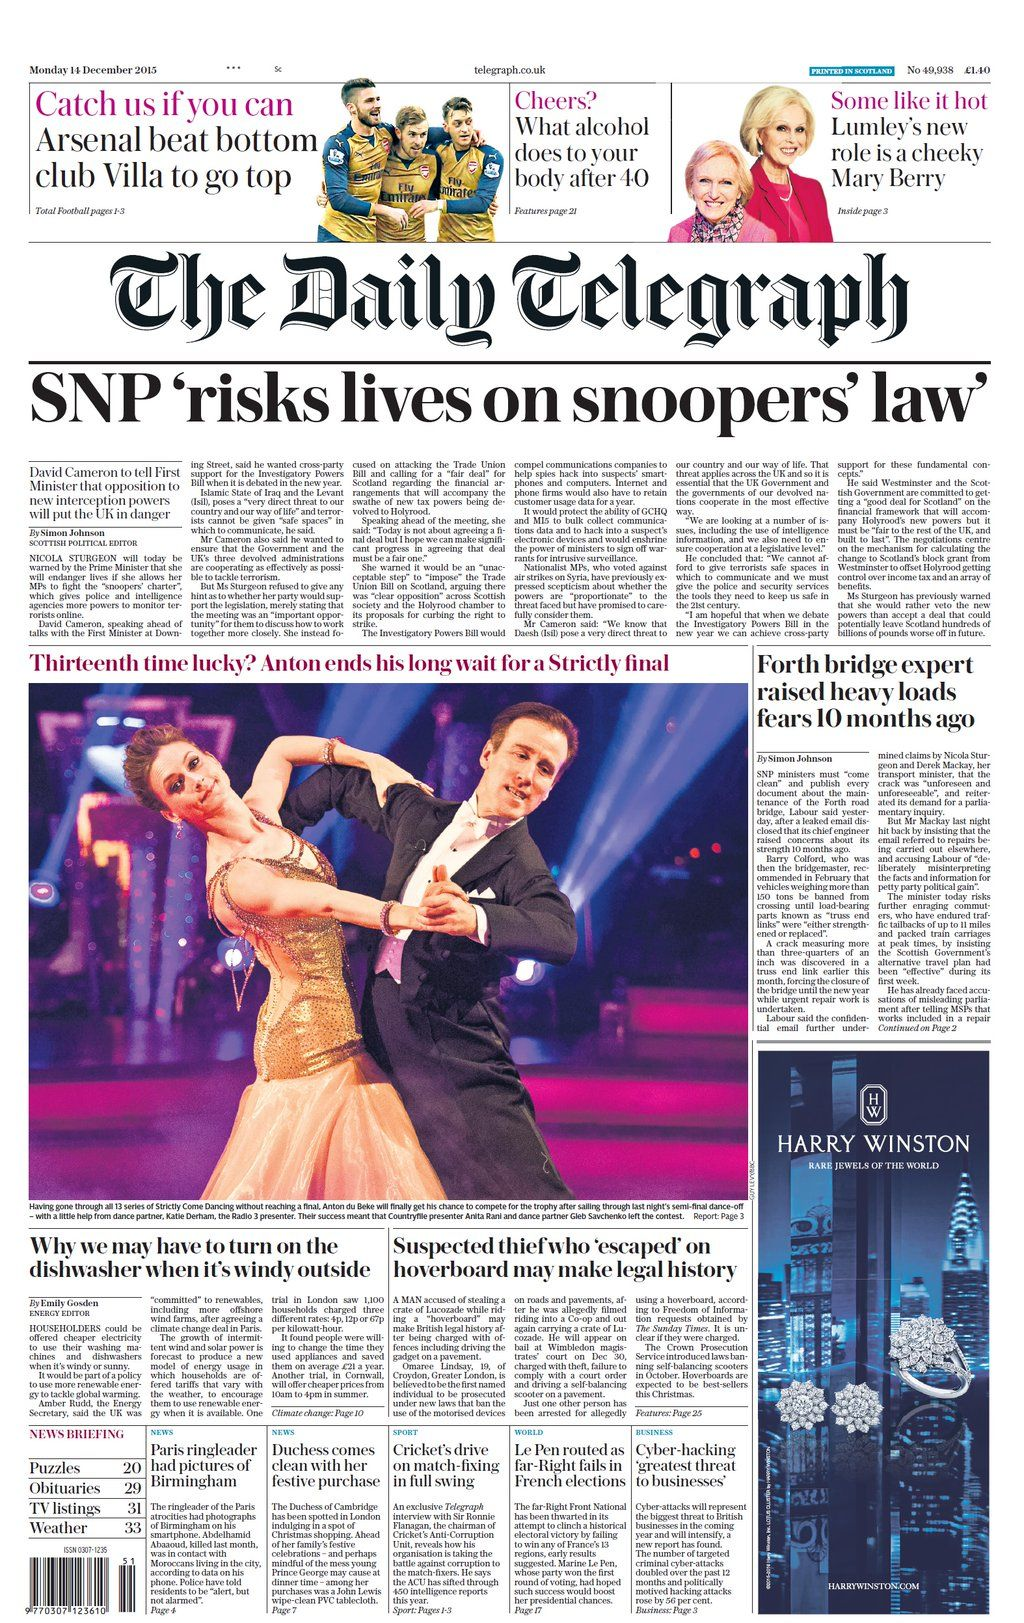 Monday's Telegraph (Scotland) front page: SNP 'risks lives on snoopers' law' #tomorrowspaperstoday #bbcpapers https://t.co/Bd3smjjTLj